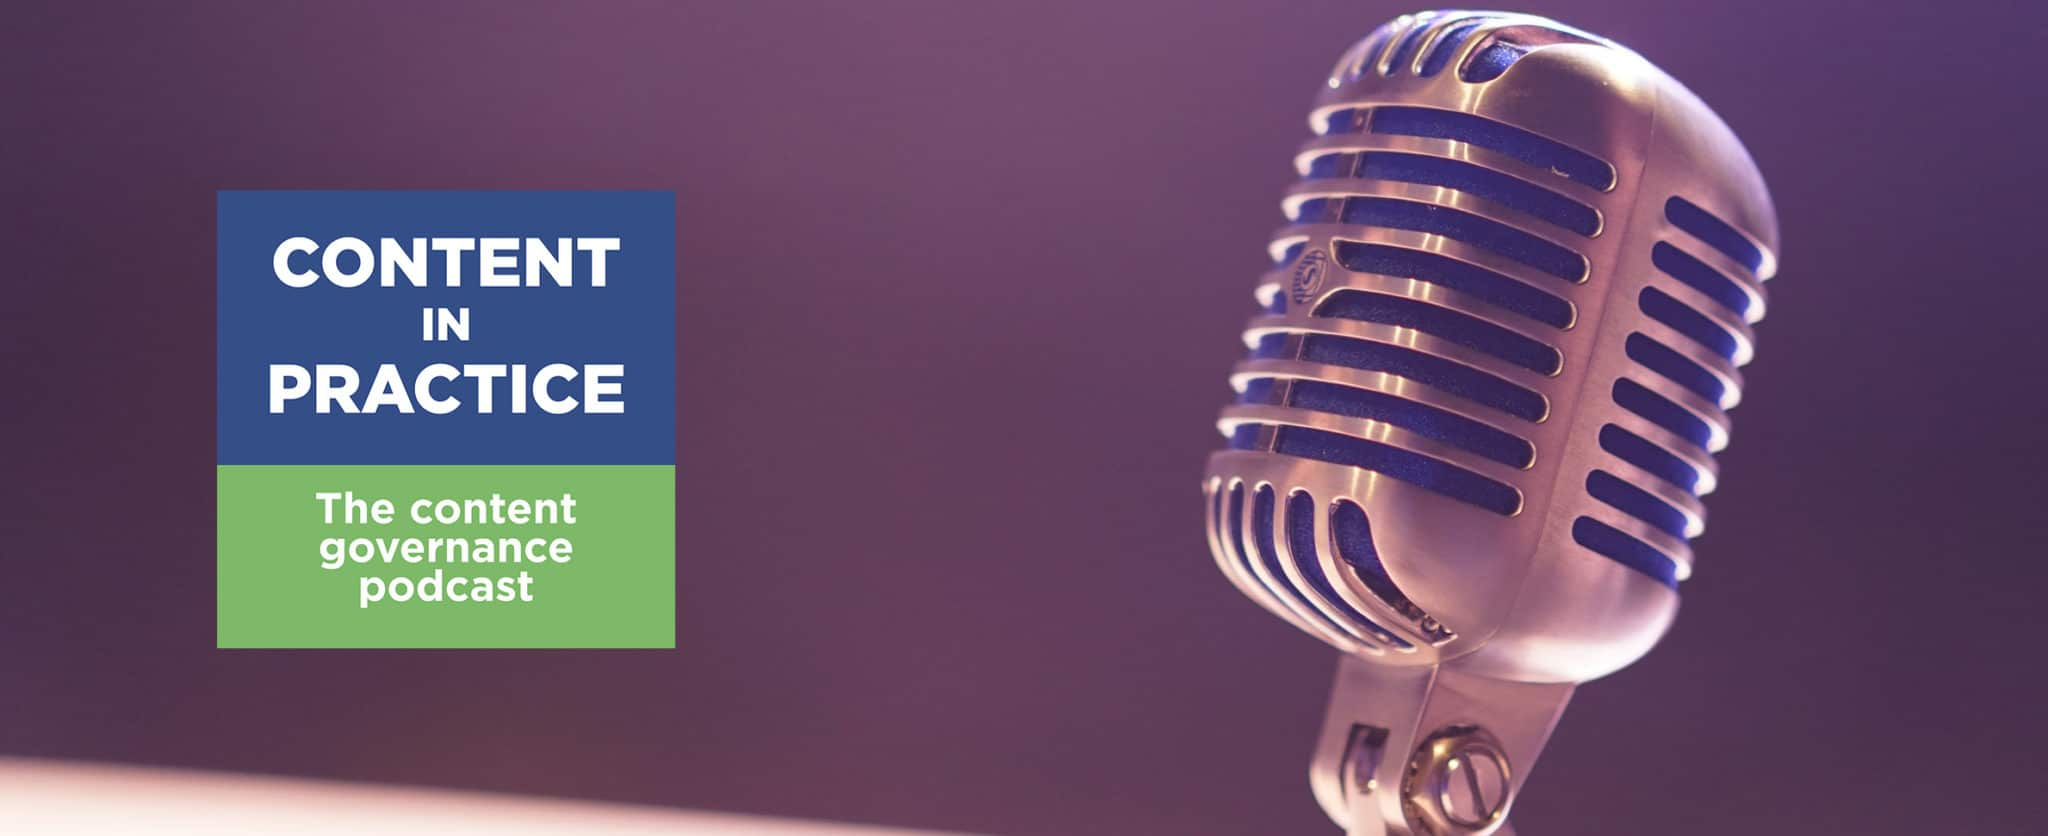 Announcing CSI's new monthly content governance podcast: <i>Content in Practice</i>